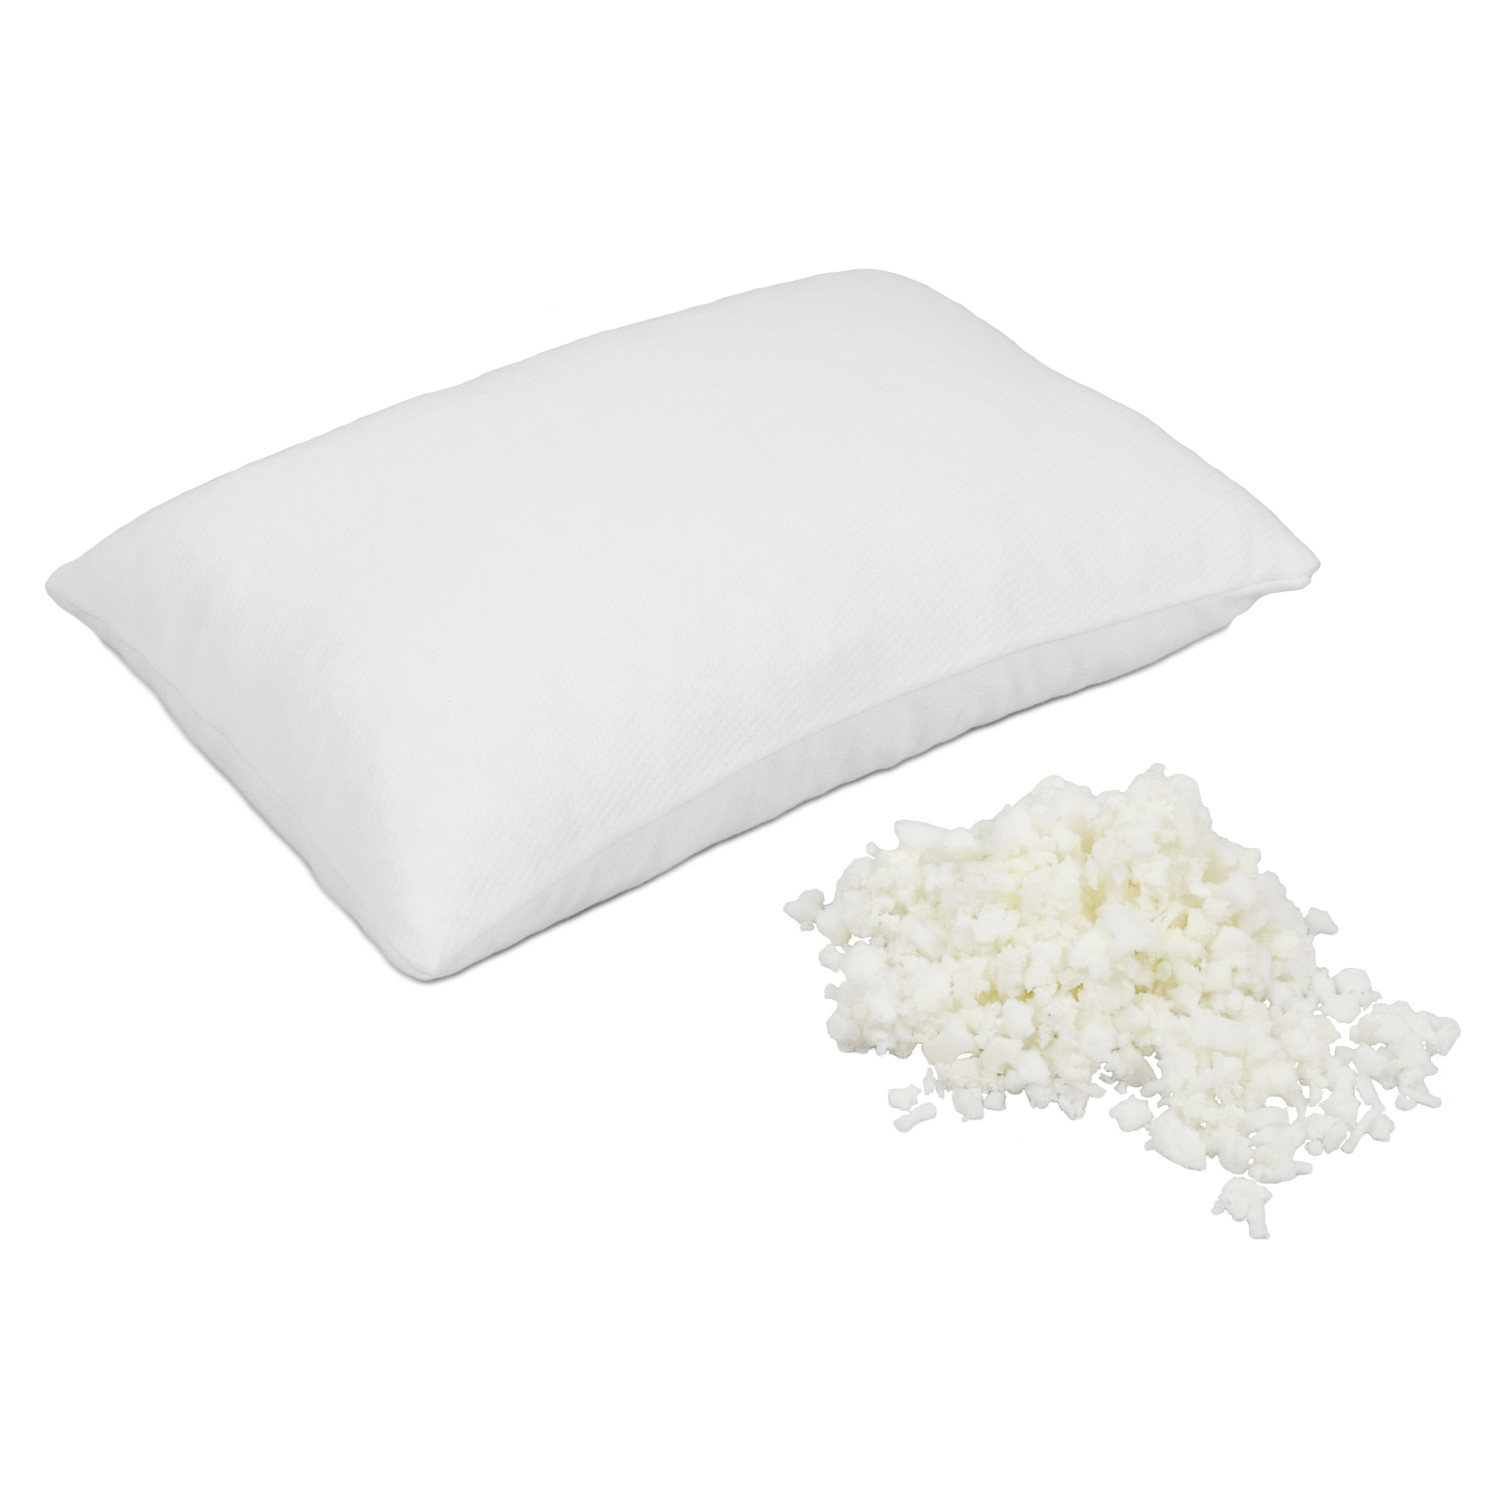 shredded memory foam pillow foam